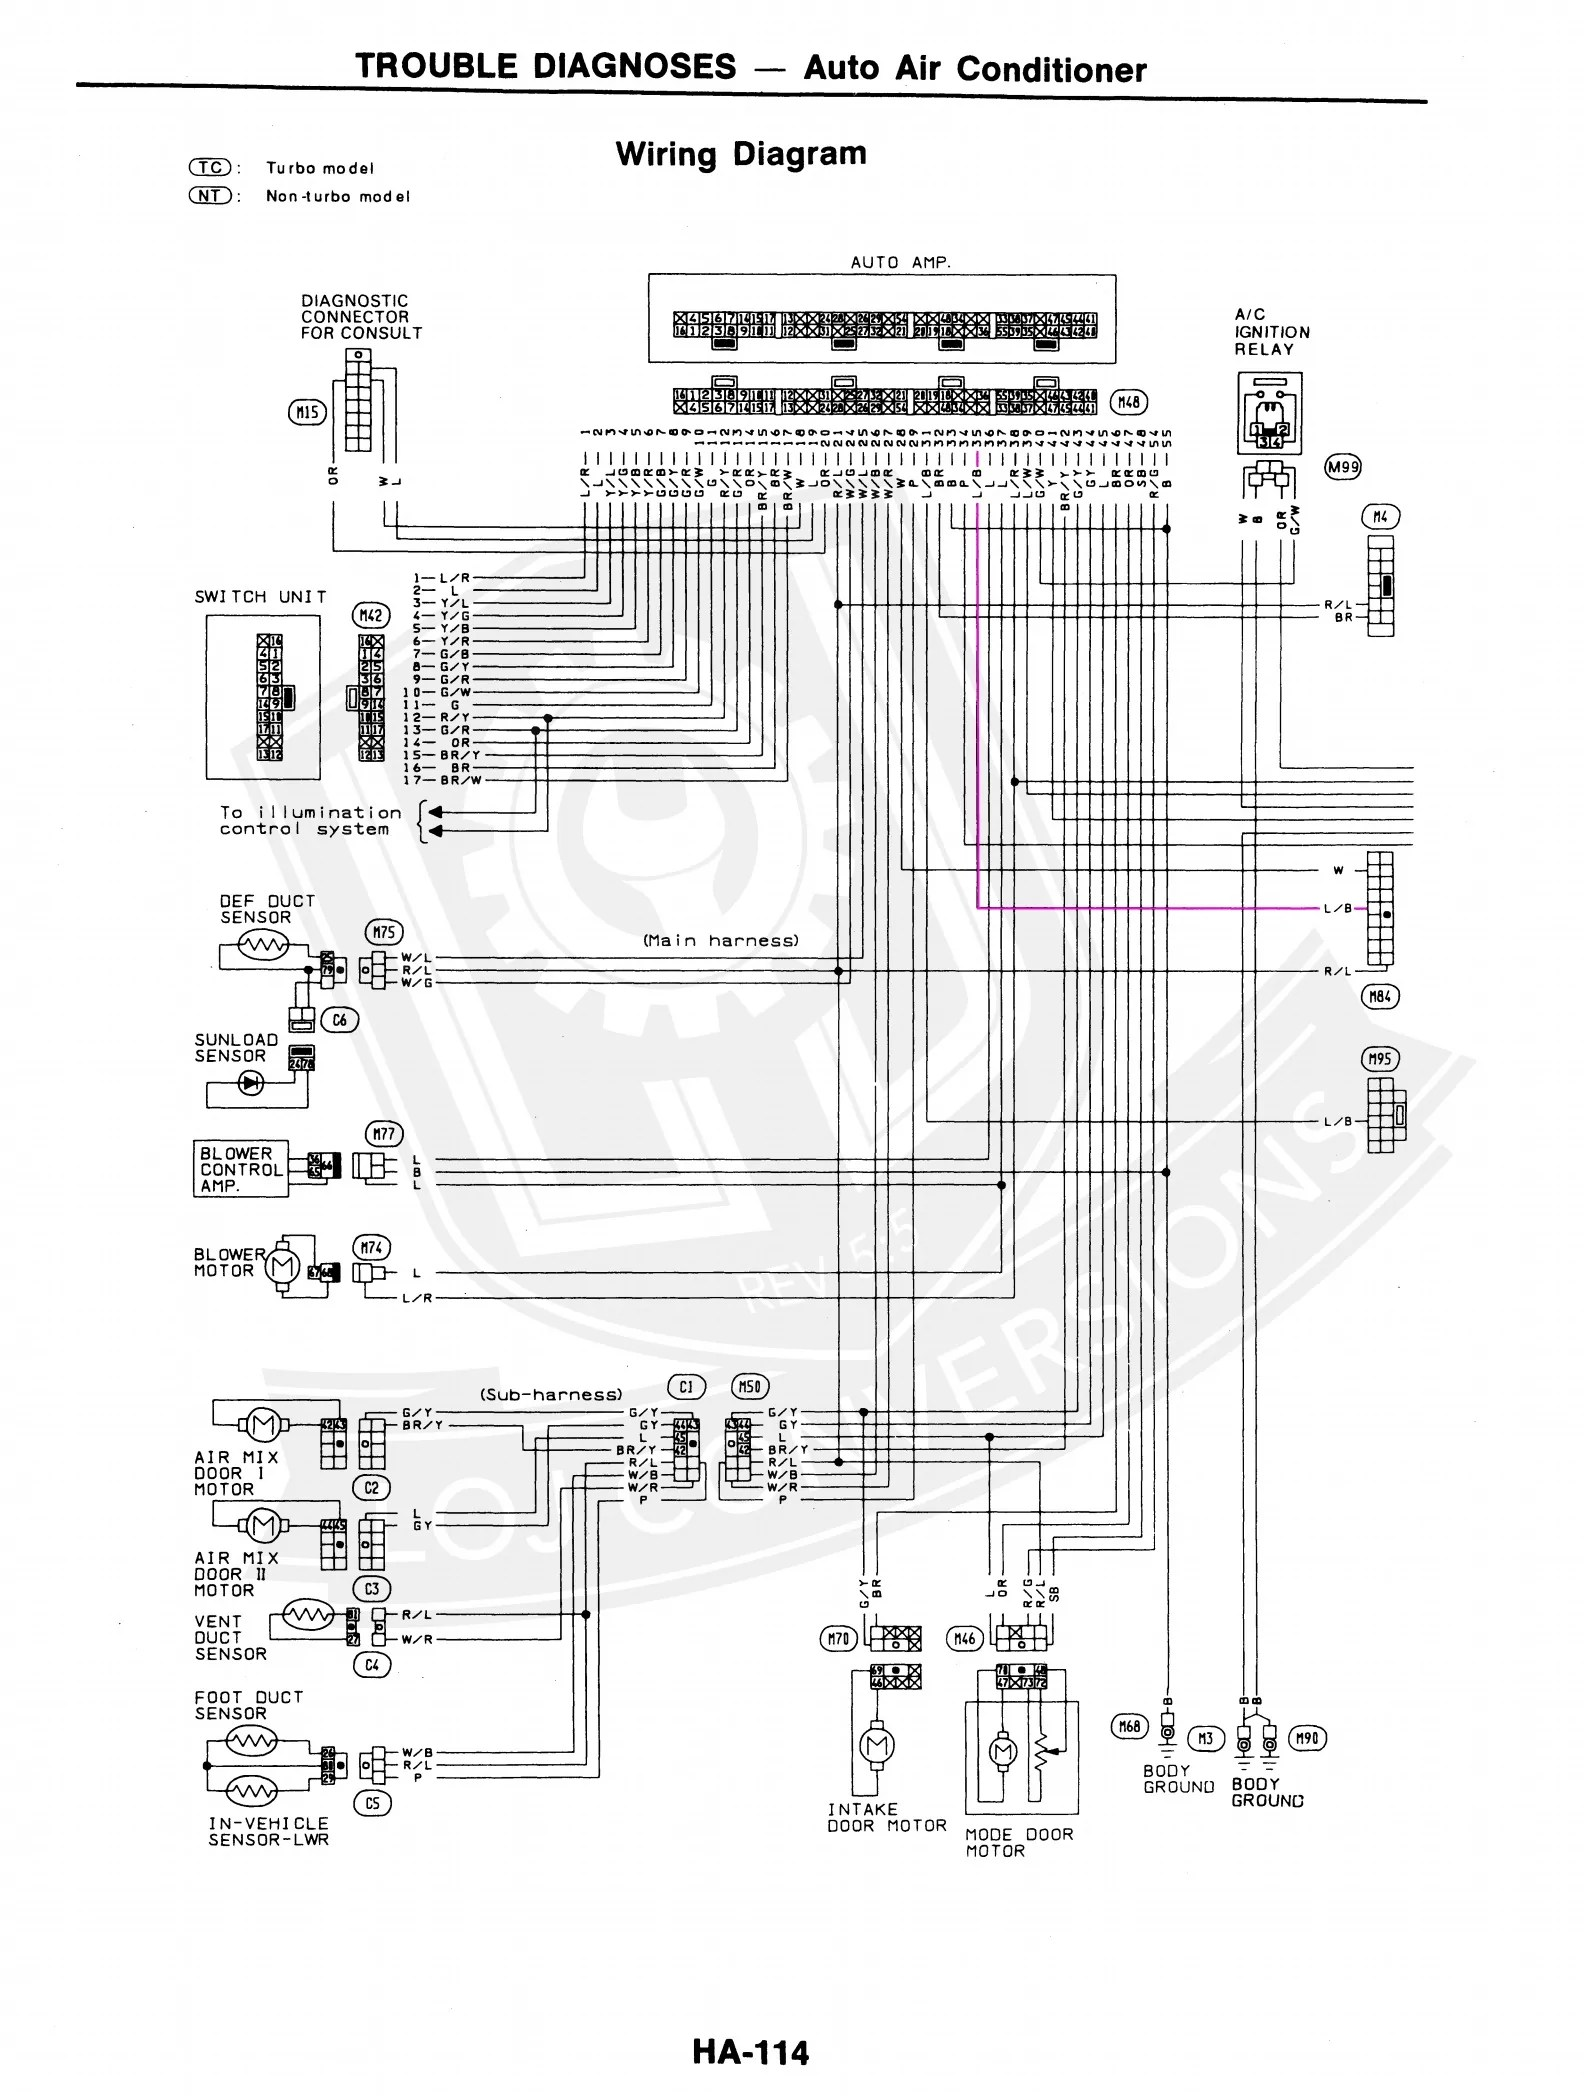 small resolution of 300zx turbo wiring diagram wiring diagram nissan datsun 300zx turbo exhaust diagram category exhaust diagram